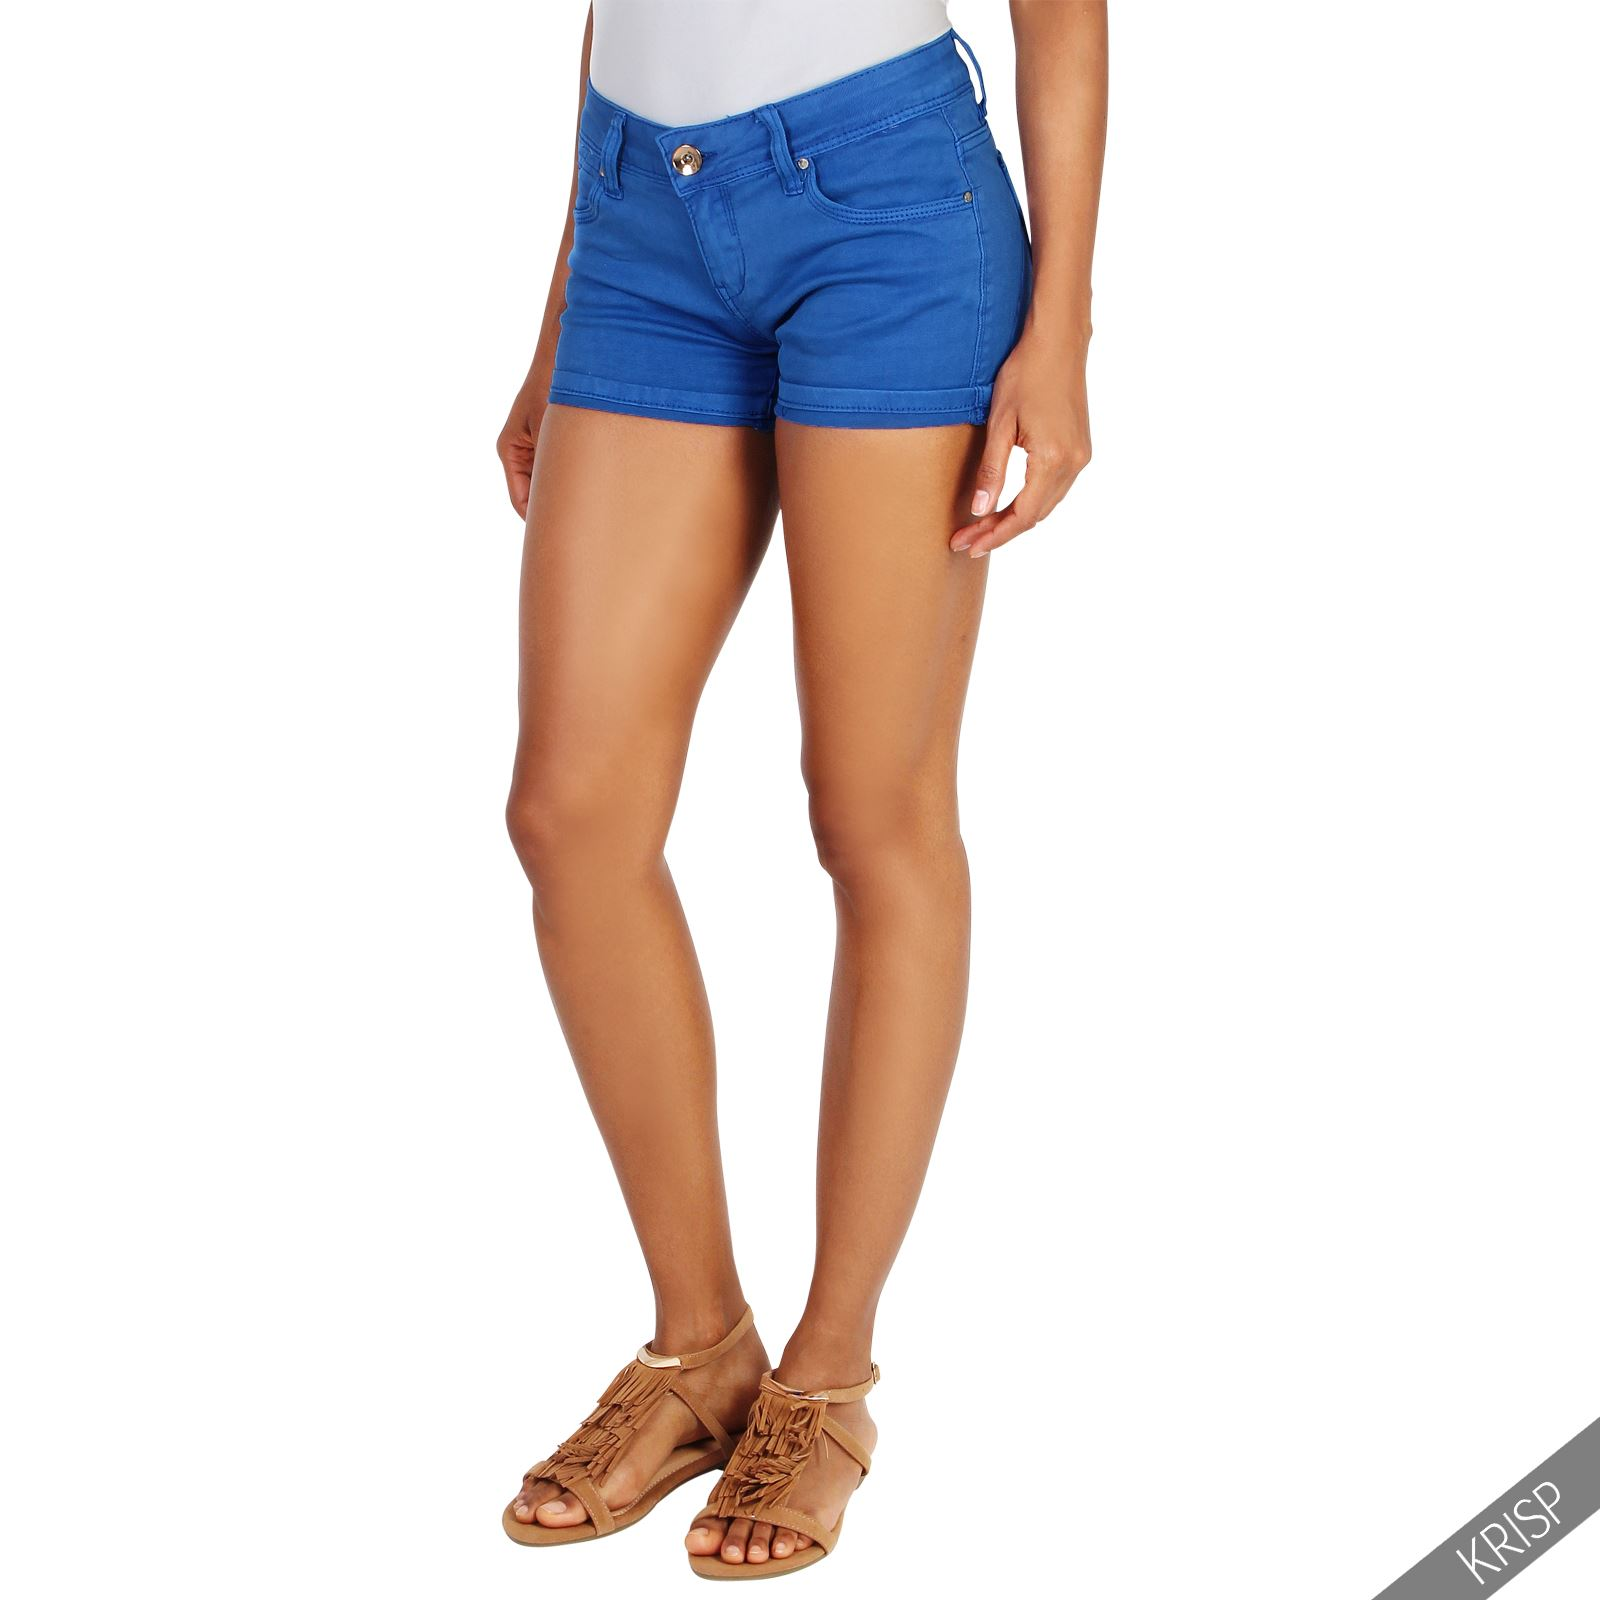 12, results for ladies stretch shorts Save ladies stretch shorts to get e-mail alerts and updates on your eBay Feed. Unfollow ladies stretch shorts to stop getting updates on your eBay feed.